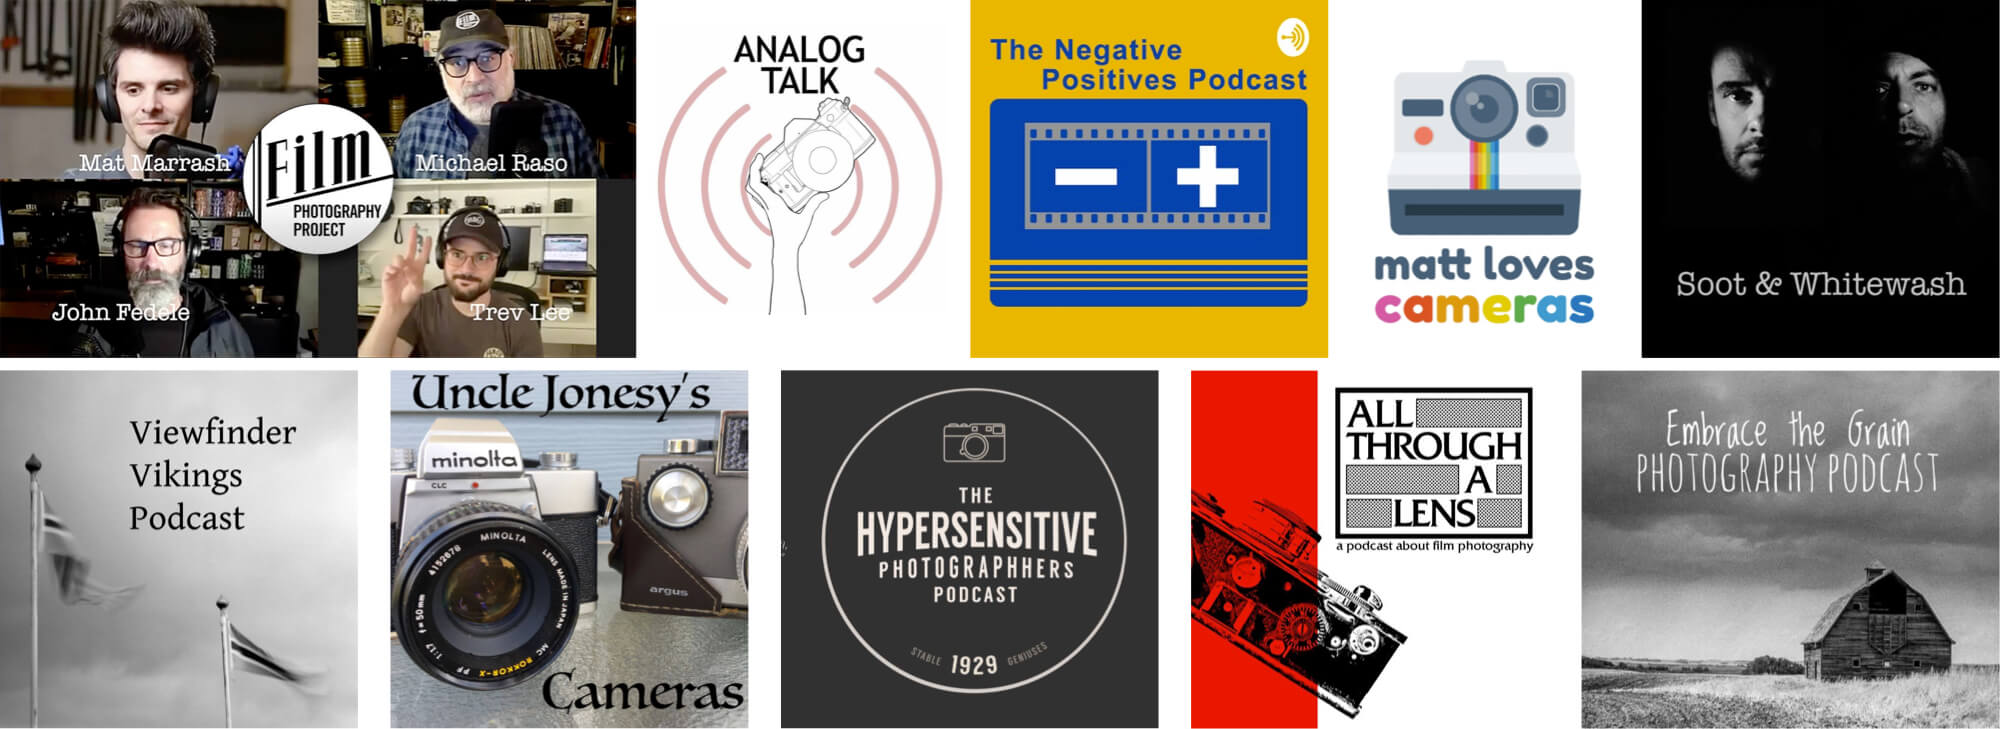 podcasts for film photography